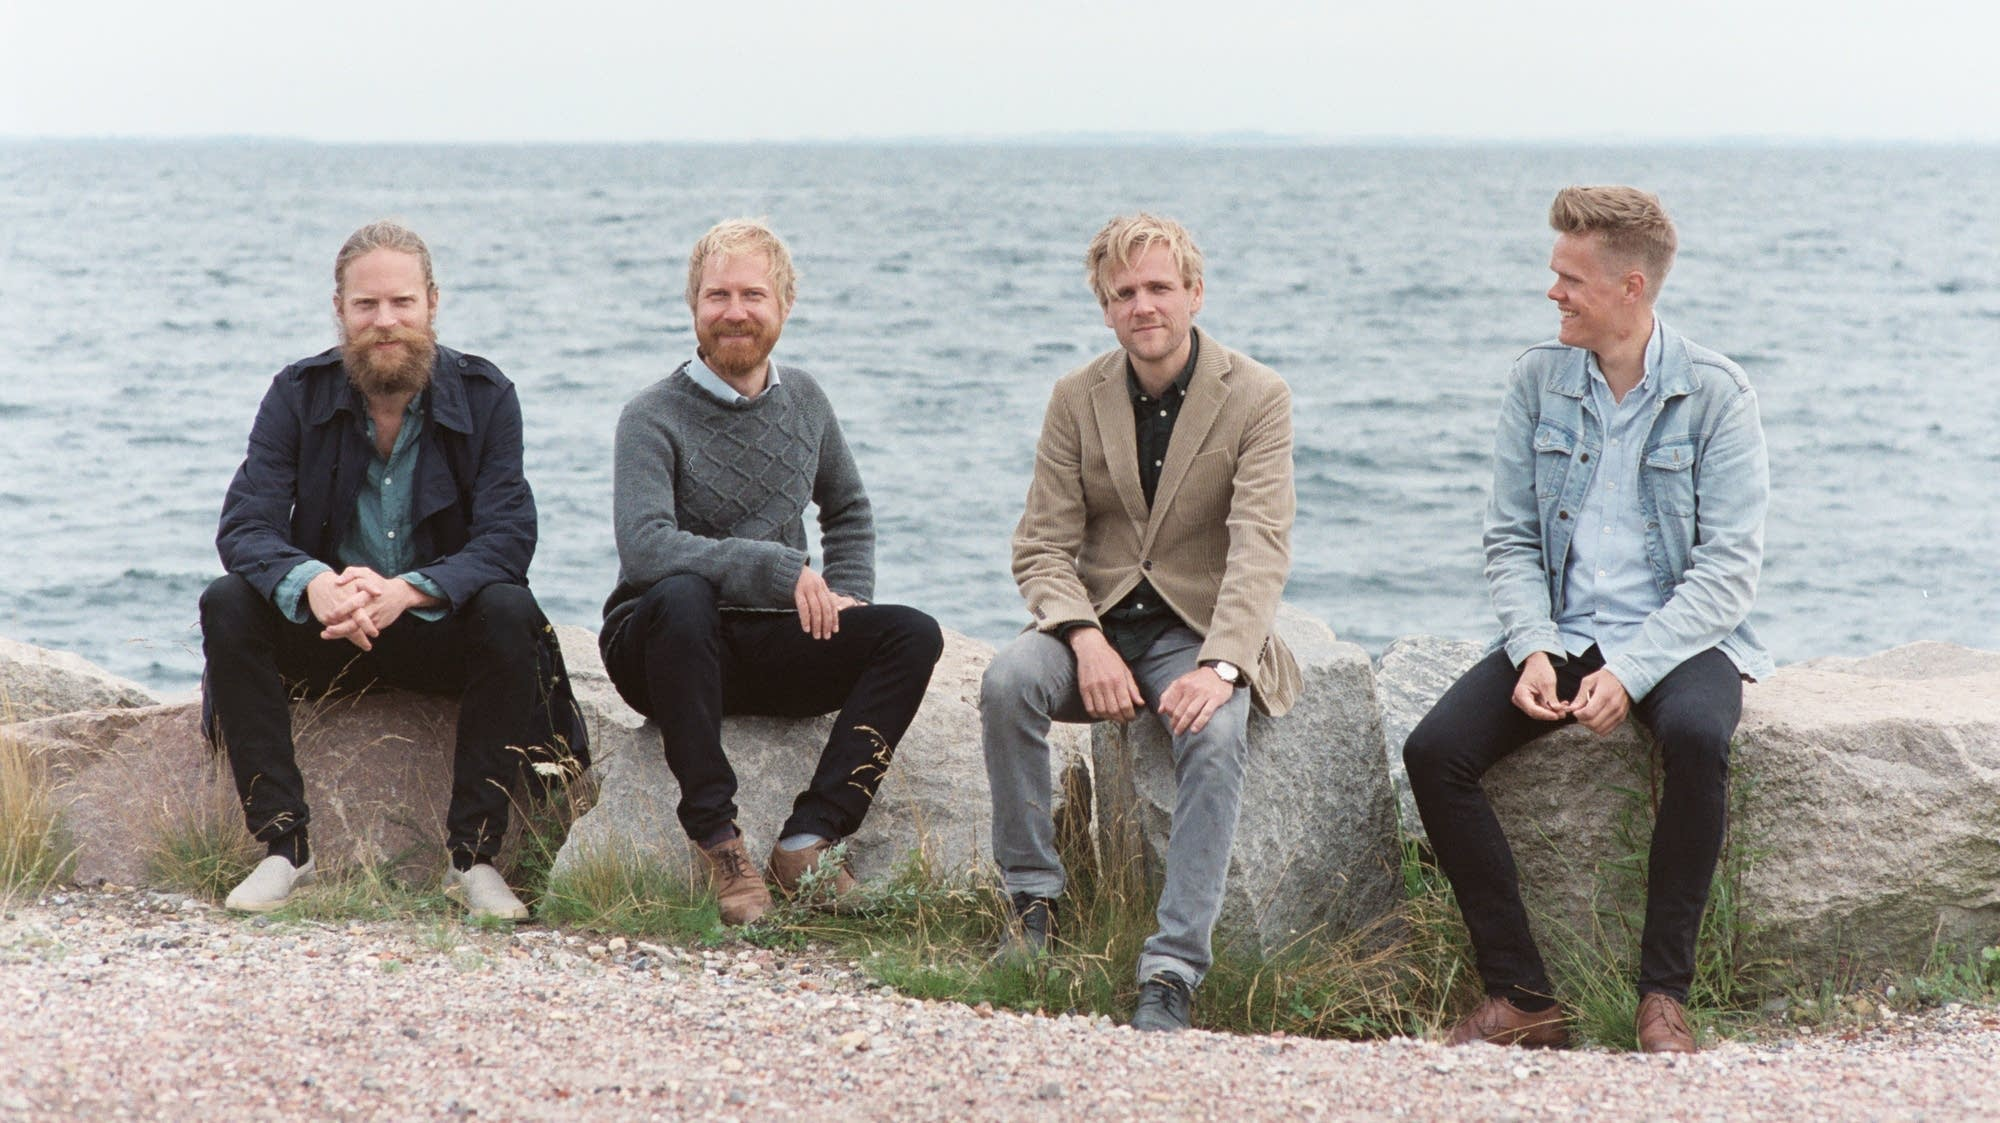 Members of the Danish String Quartet